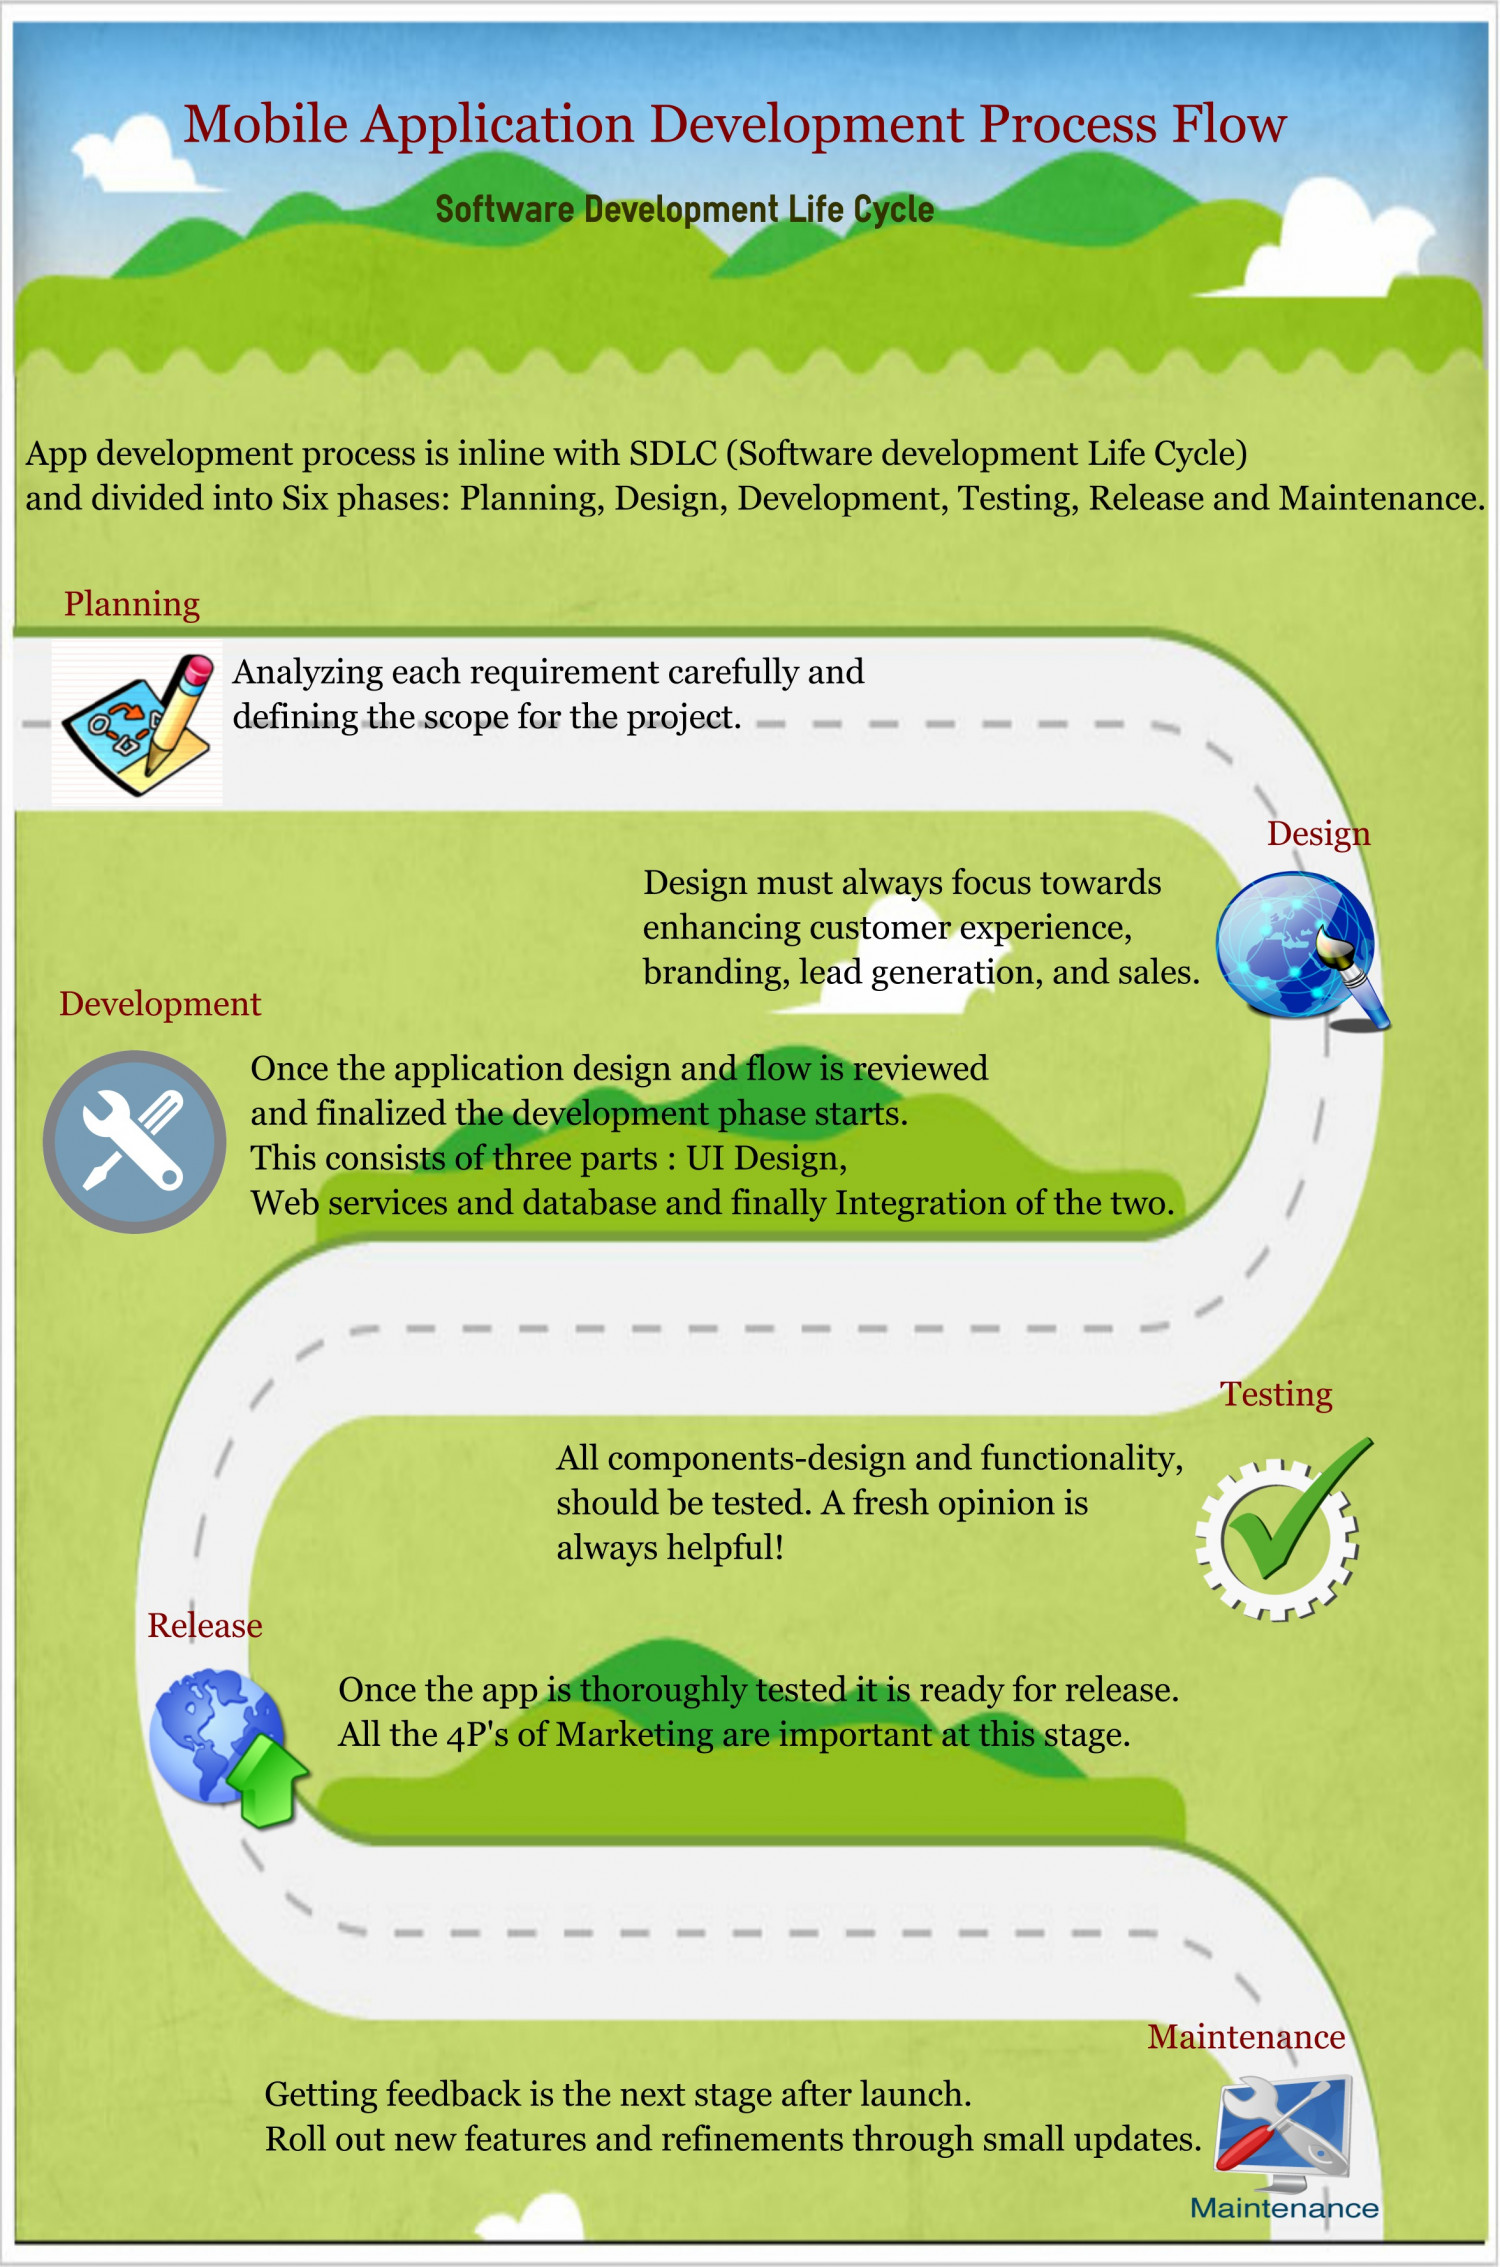 Mobile Application Development Process Flow Infographic